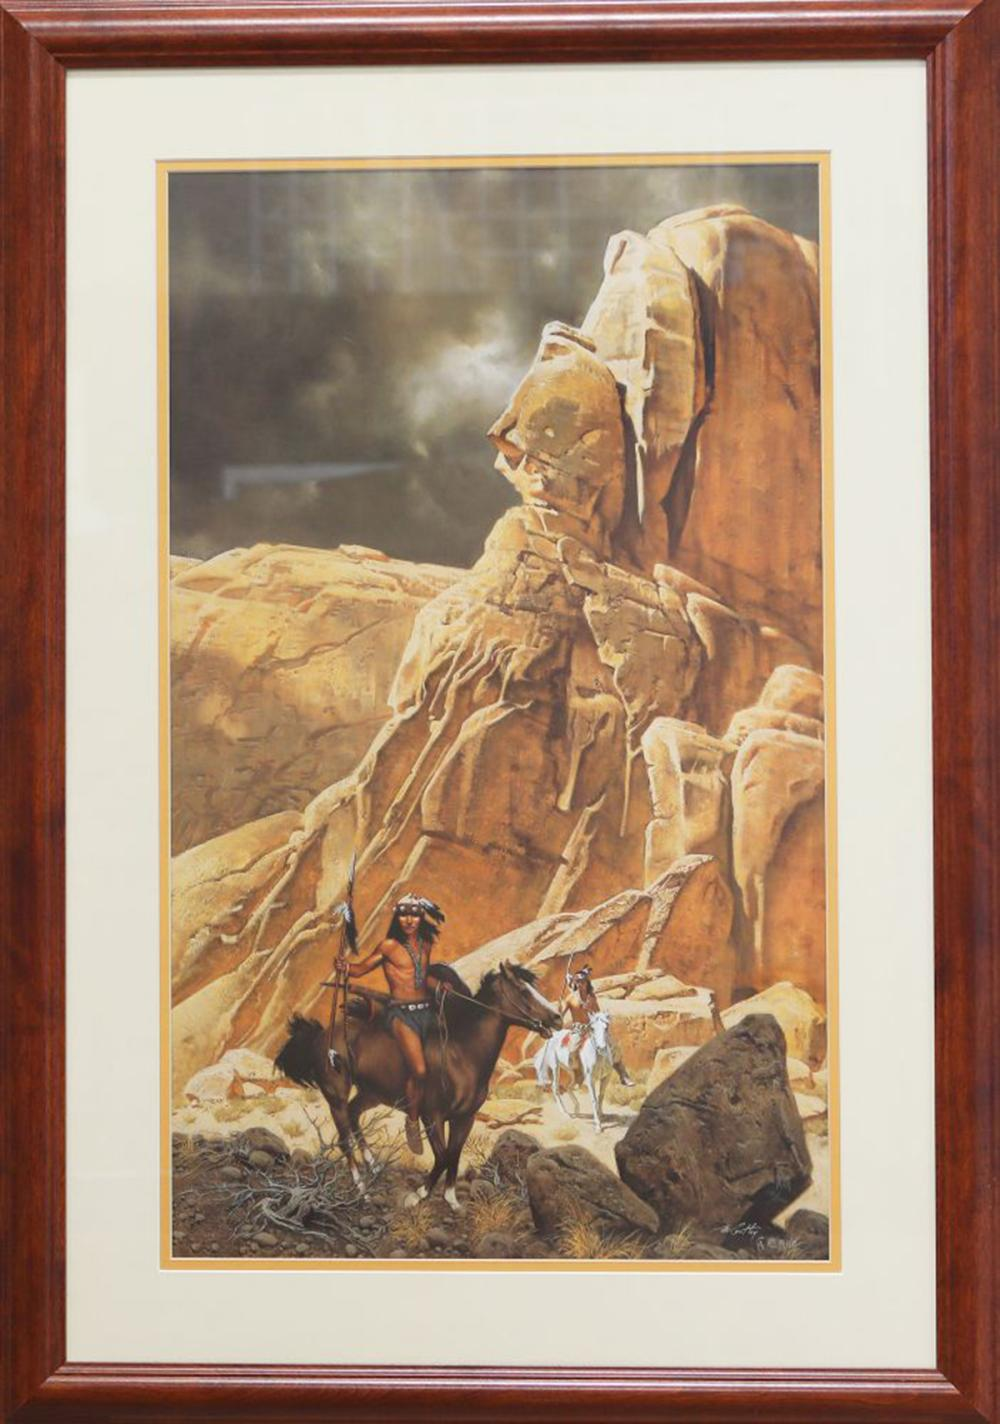 """Frank McCarthy's """"Canyon Lands"""" Limited Edition Framed Print"""